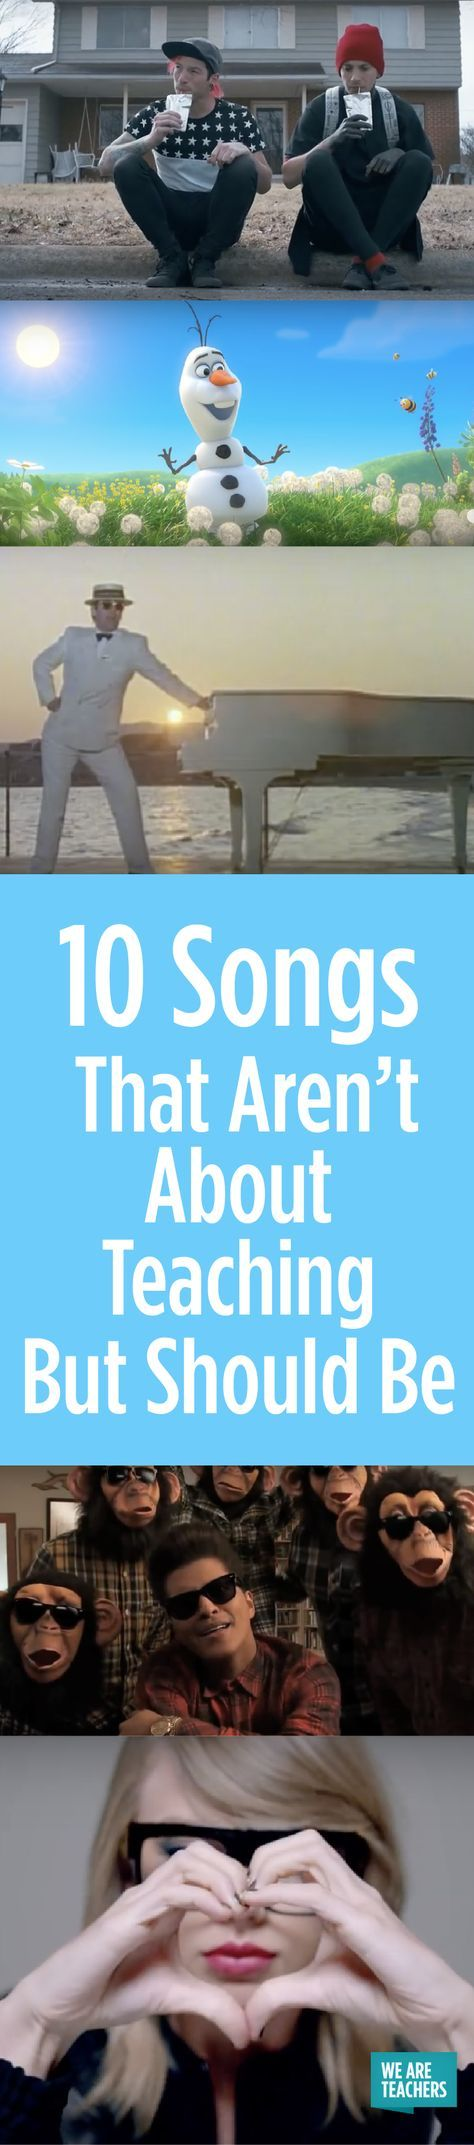 10 Songs That Aren't About Teaching … But Should Be - WeAreTeachers